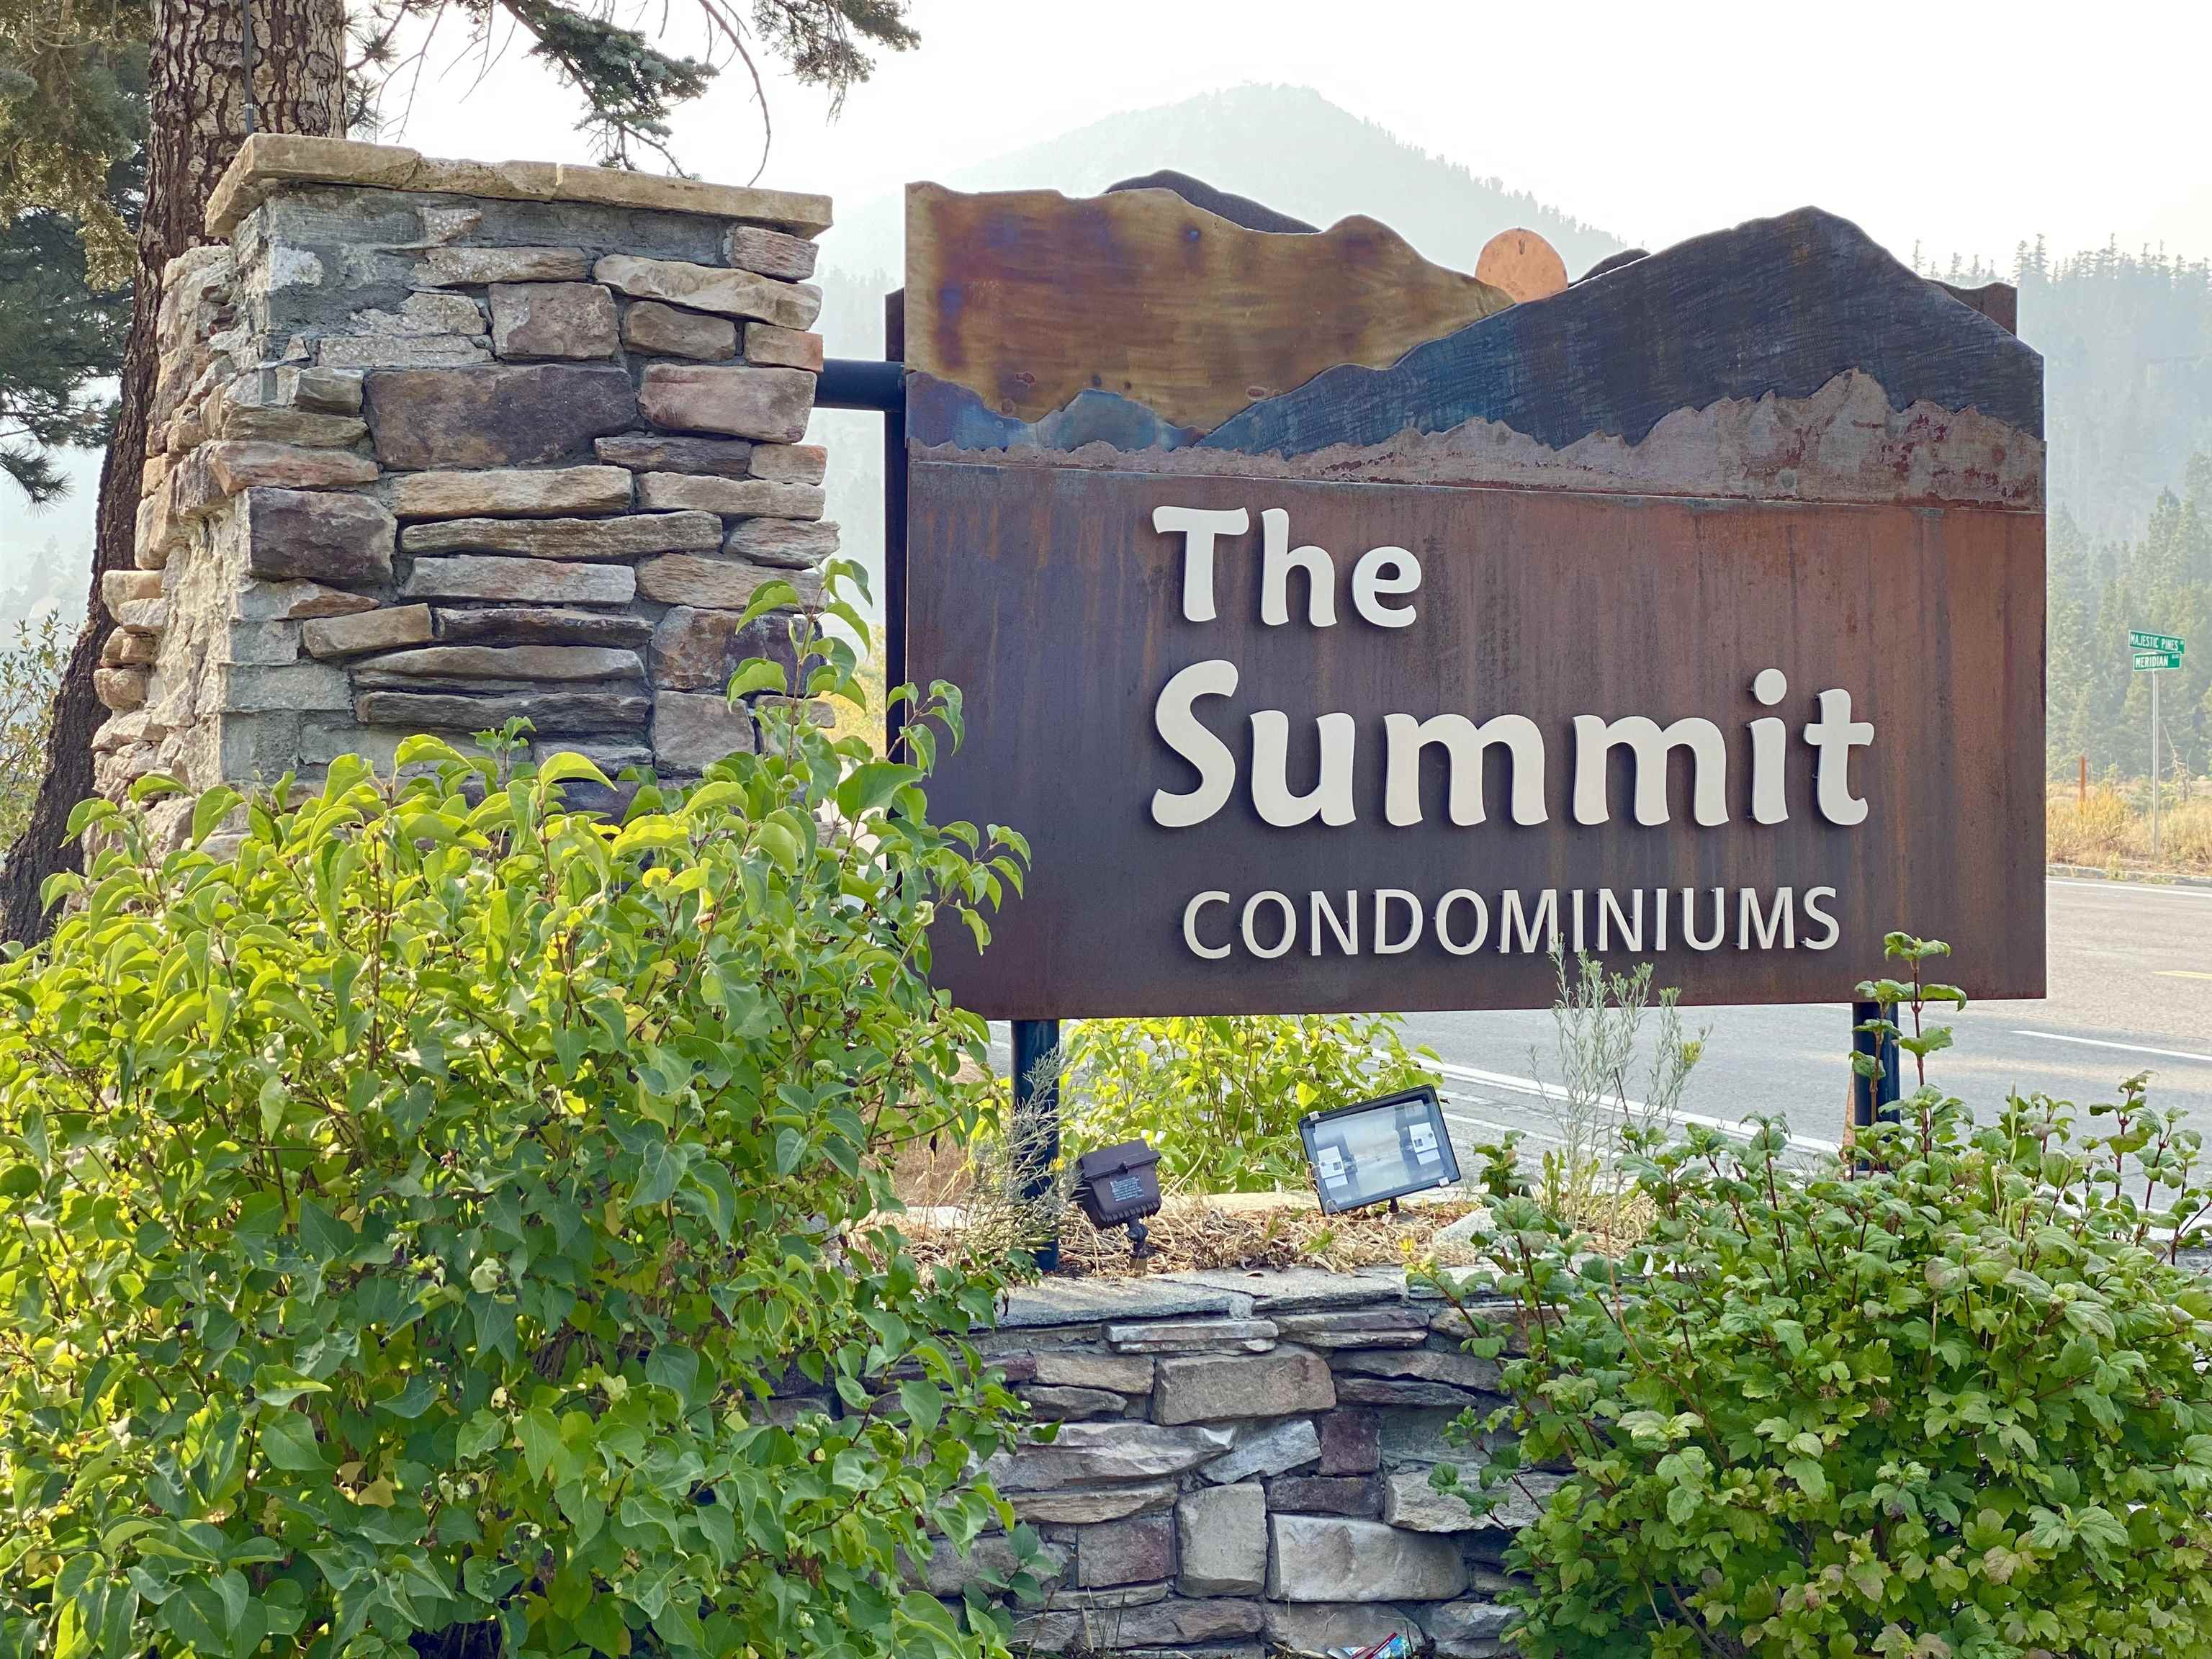 """Summit-Grand #60 is set to impress with views and perfectly situated within steps to the Little Eagle Lodge, ski lifts and bike path. Enjoy the convenience of your underground parking with designated space. The Grand building is the most desirable at Summit with its location to the slopes and views.  A luxury two level 3 Bedroom, 2.75 bathroom with vaulted ceilings on both levels and at the landing of the 2nd level you will find a bonus """"reading"""" area designed for you to relax at your Mountain getaway.  Numerous walk-in closets offering an abundance of storage for your recreational toys. Your family and friends can appreciate the immense living room with a dramatic ledger rock hearth and wood burning fireplace with a custom wood carved mantel. Watch the weather and seasons change from the large windows and open deck offering you the Eastern Sierra view from all angles. A open kitchen floor plan with granite counters, glass tile backsplash, cherry wood cabinets and tile plank flooring. On the main level you will find the large en-suite primary bedroom with built in custom closets, travertine walk-in shower, double sink and granite counters.  On level 2 you will find 2 oversized bedrooms with a Jack and Jill bathroom offering a shower/tub enclosure between two sinks. The grand staircase has custom iron balusters simulating aspen trees. The washer and dryer are included and located on the Main level. Summit Association has multiple tennis courts, pools, spas, saunas, bike racks and is beautifully landscaped. The Association recently remodeled with new exterior hardy shiplap siding, dual pane windows, roof and custom ledger rock work. Low monthly HOA dues which include cable/internet. Close to Starwood golf course, restaurants and shopping.  This property will be sold partially furnished and is a must see!"""